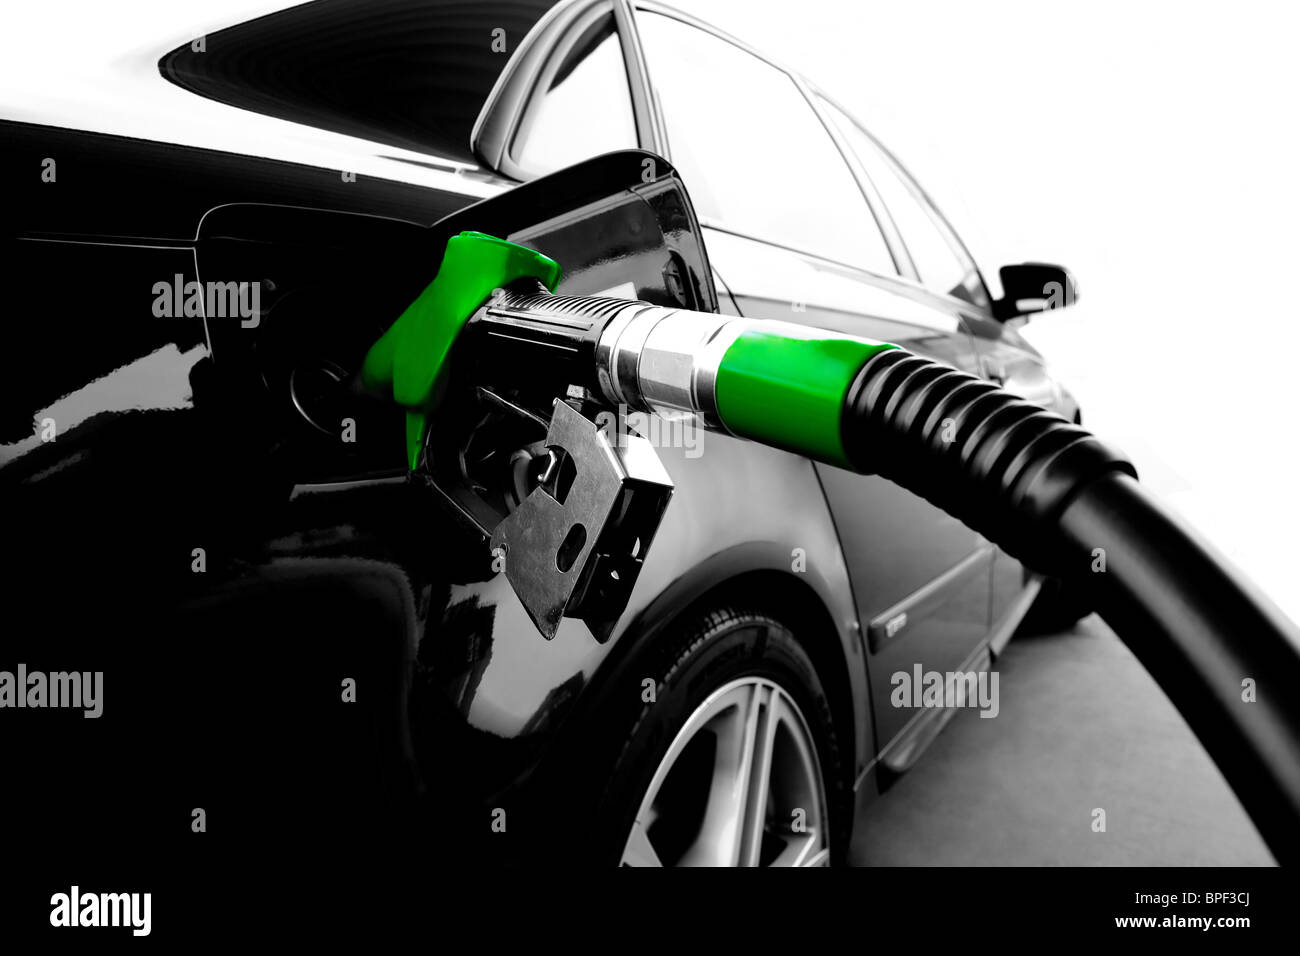 Green Gasoline - Stock Image